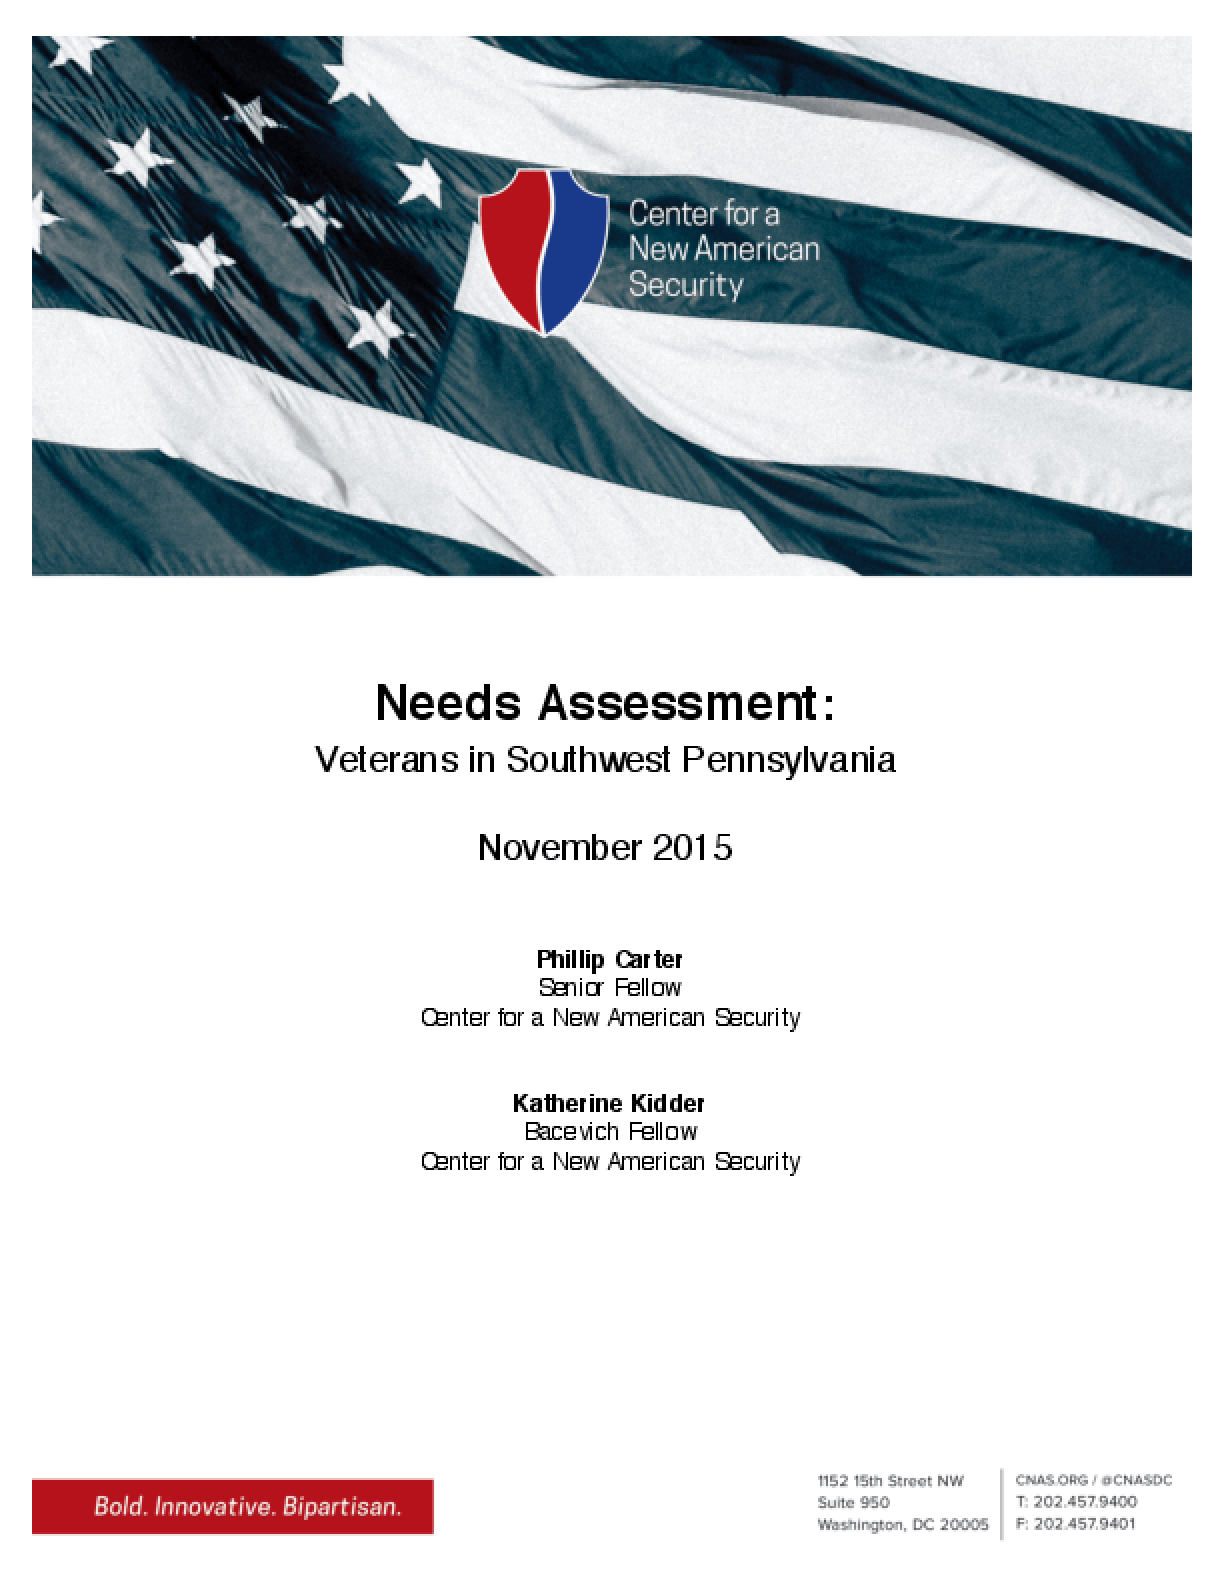 Needs Assessment: Veterans in Southwest Pennsylvania